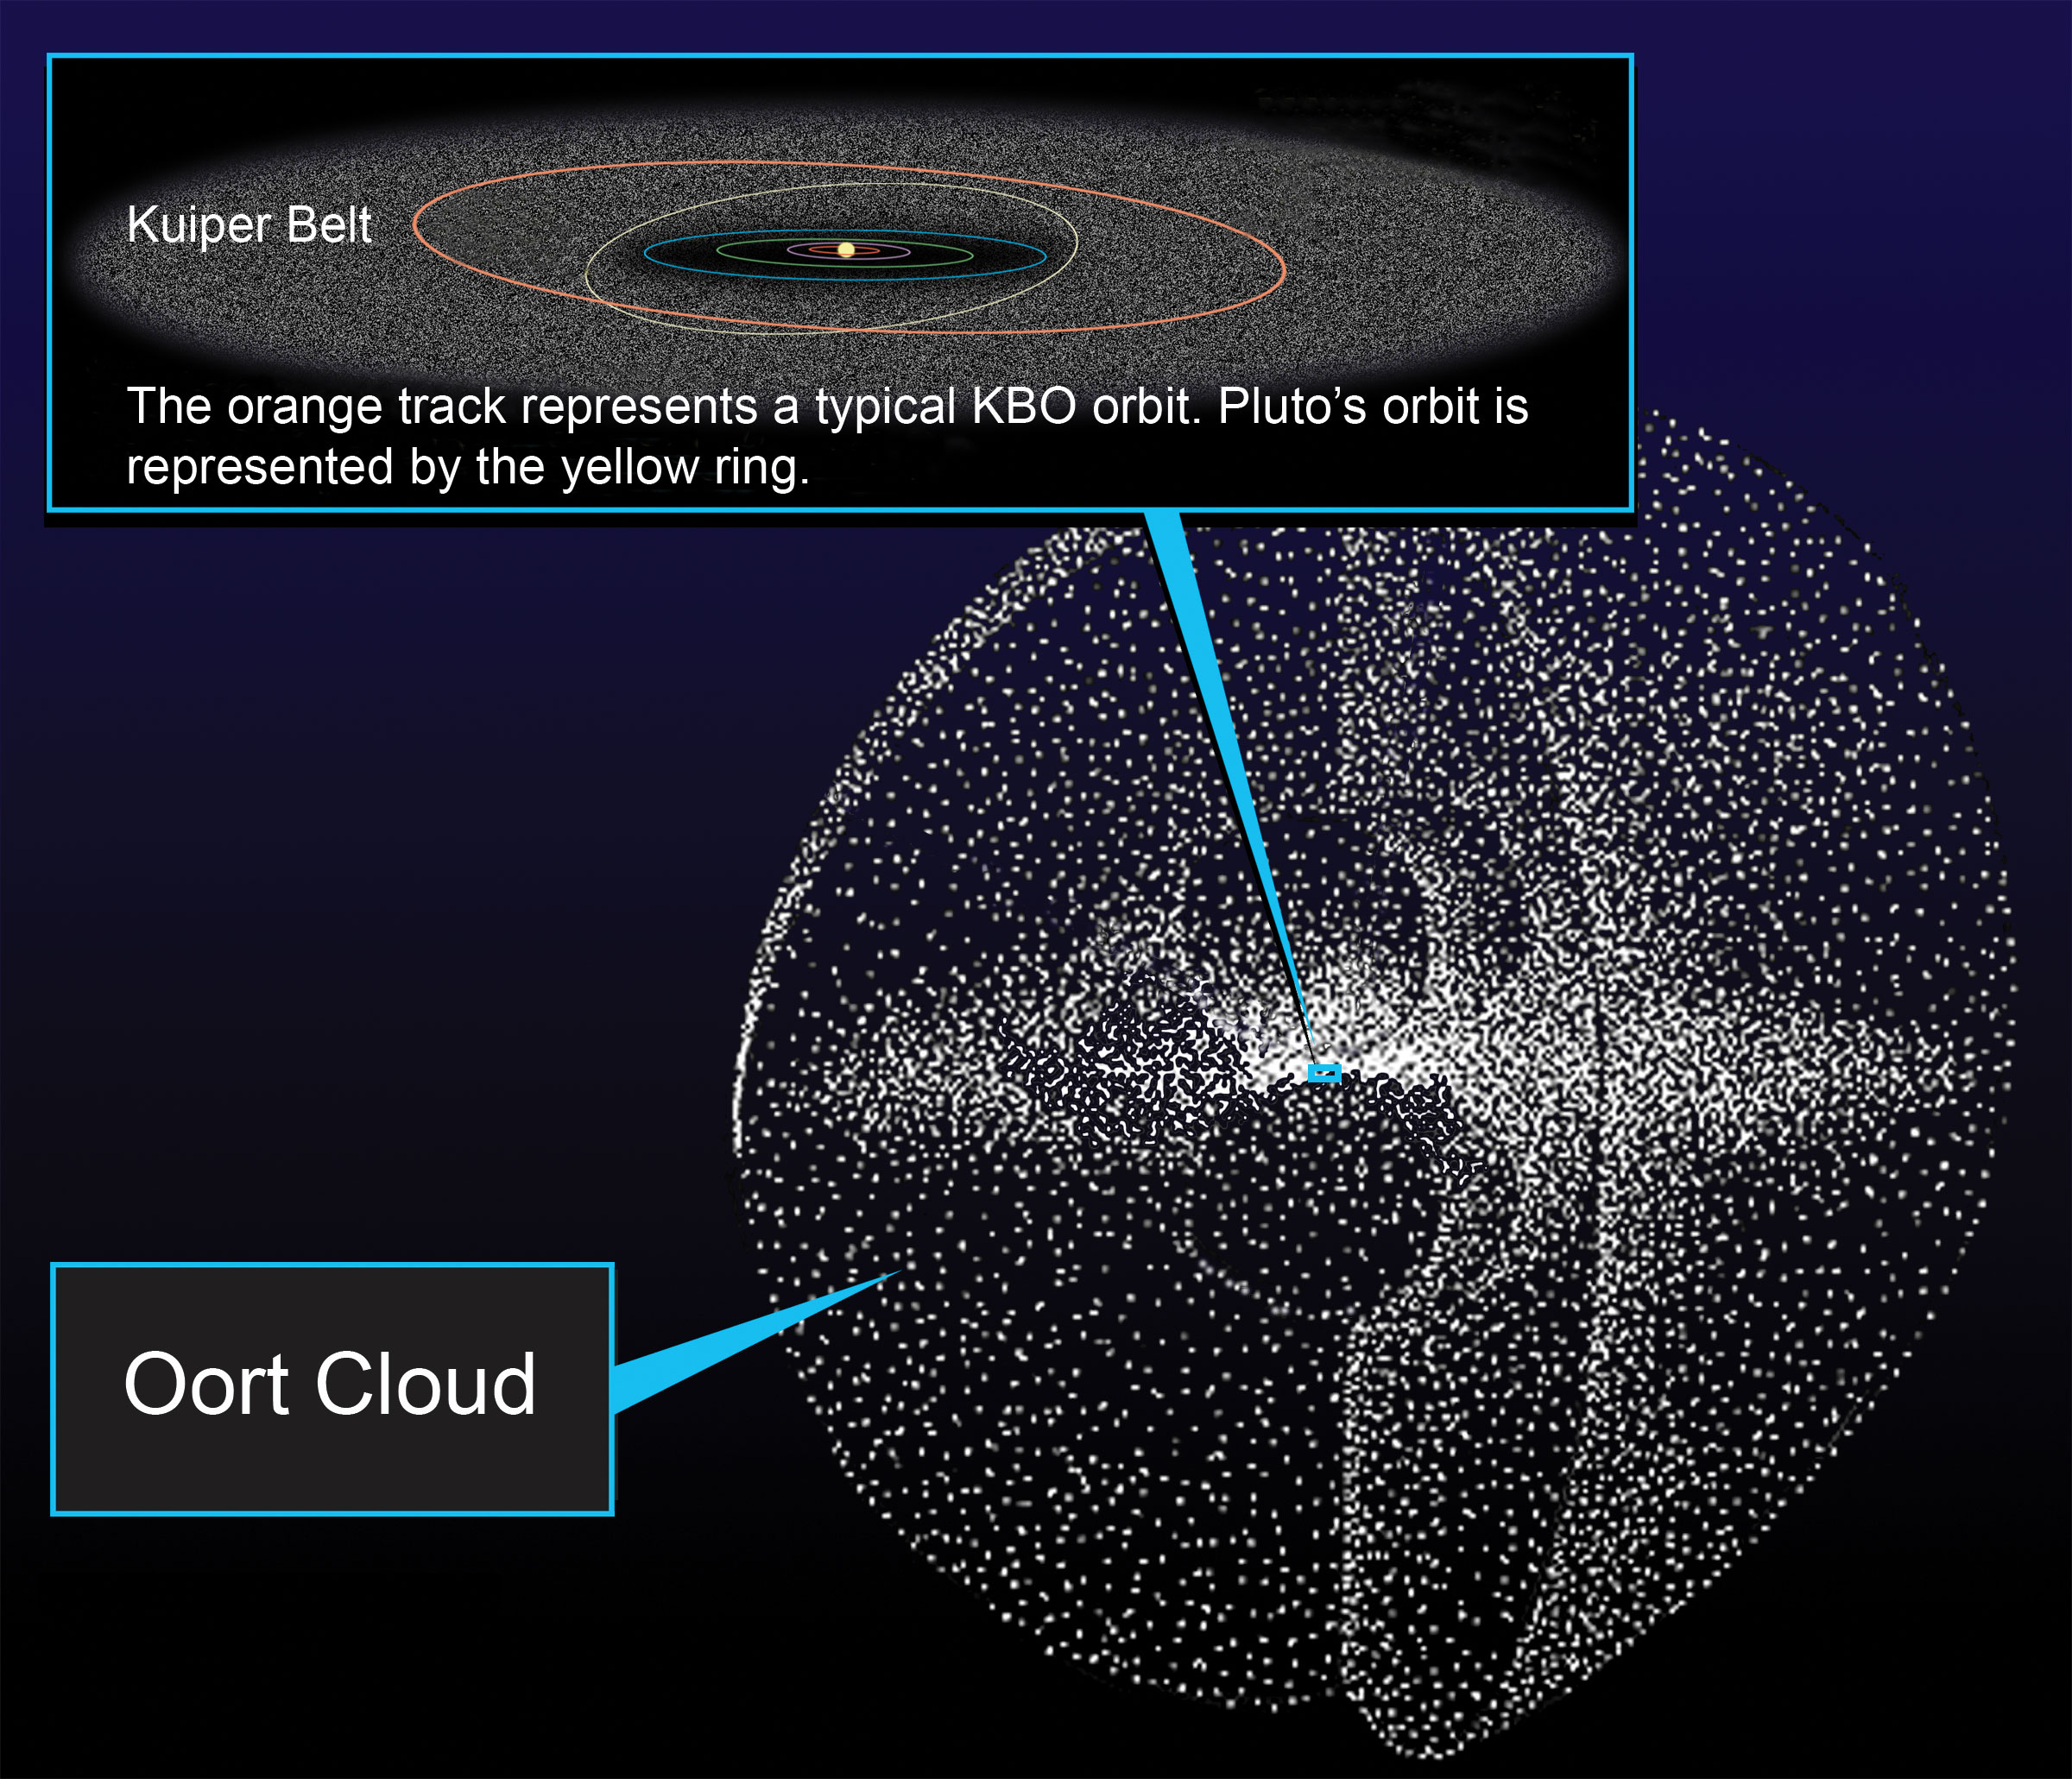 Illustration showing a potato like structure made of hundreds of points (comets) with an inset that highlights a small central box, which represents and shows the kuiper belt